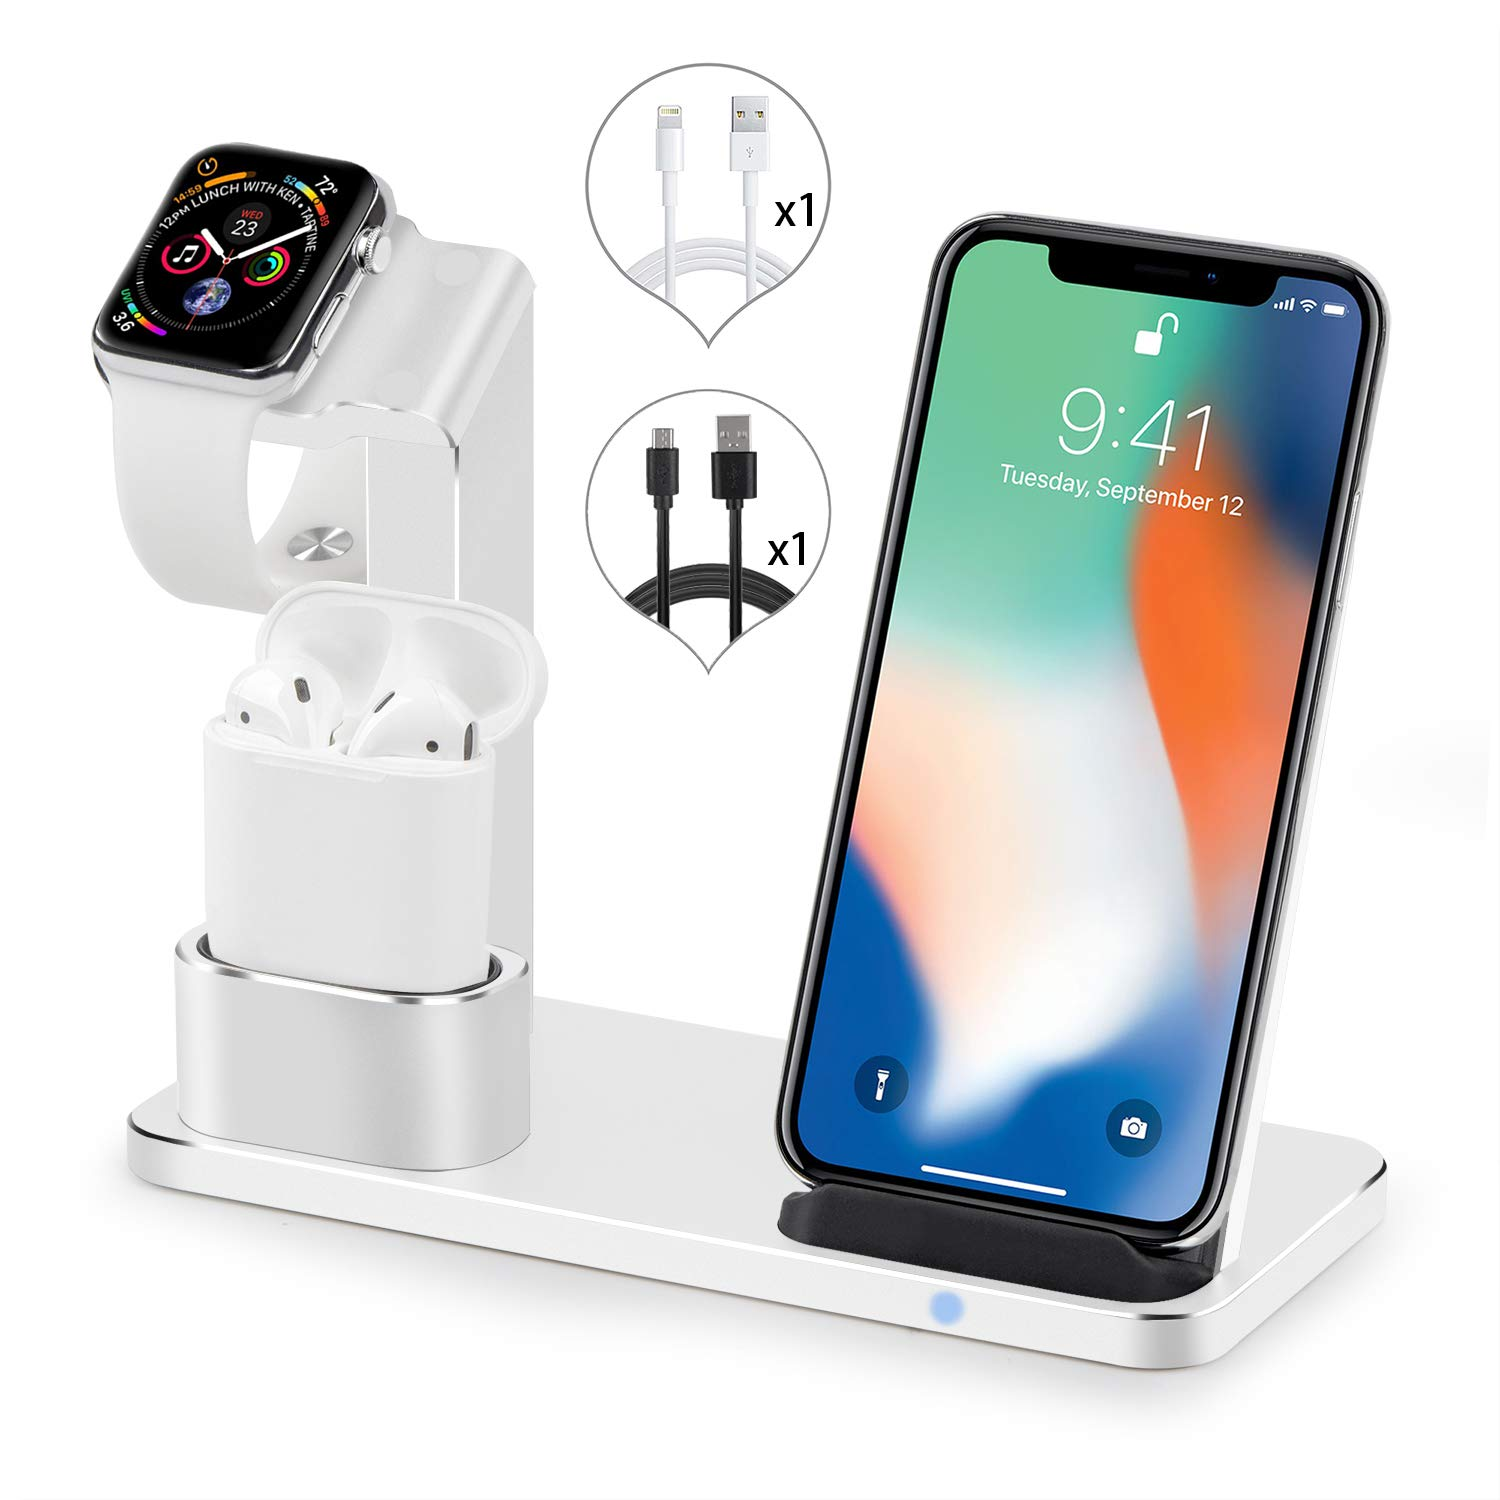 SENZLE Watch Stand Wireless Charger,3 in 1 Aluminum Fast Wireless Charger Charging Stand Dock Station for iPhone X/XS Max/Xr/8/8+/ iWatch Series 4/3/2/1/ Airpods【iWatch Charge Cable unincluded】-Silver by SENZLE